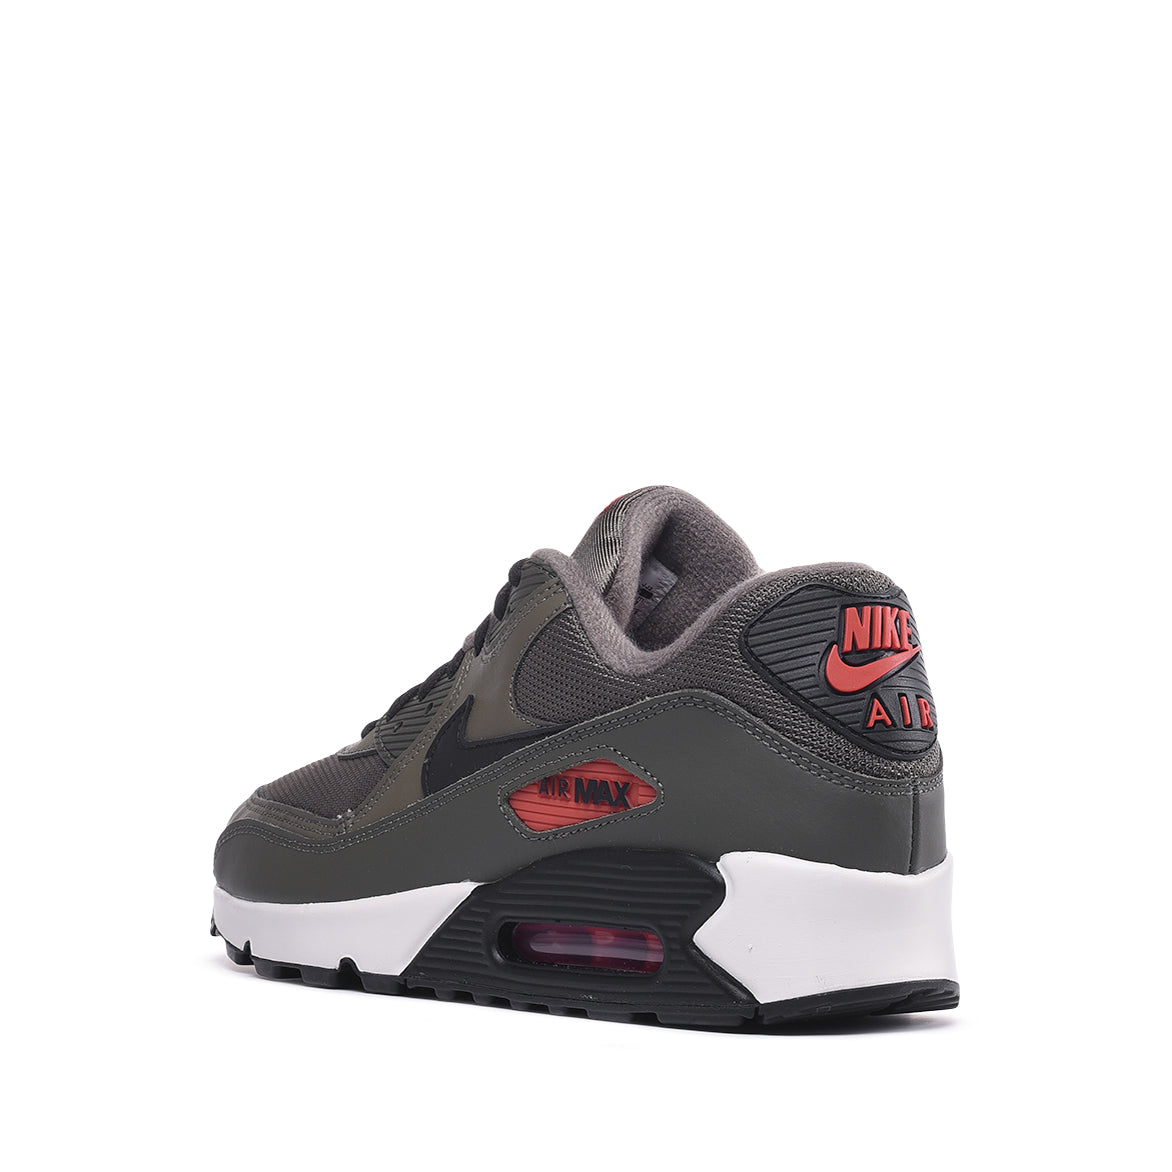 AIR MAX 90 ESSENTIAL - MEDIUM OLIVE / BLACK